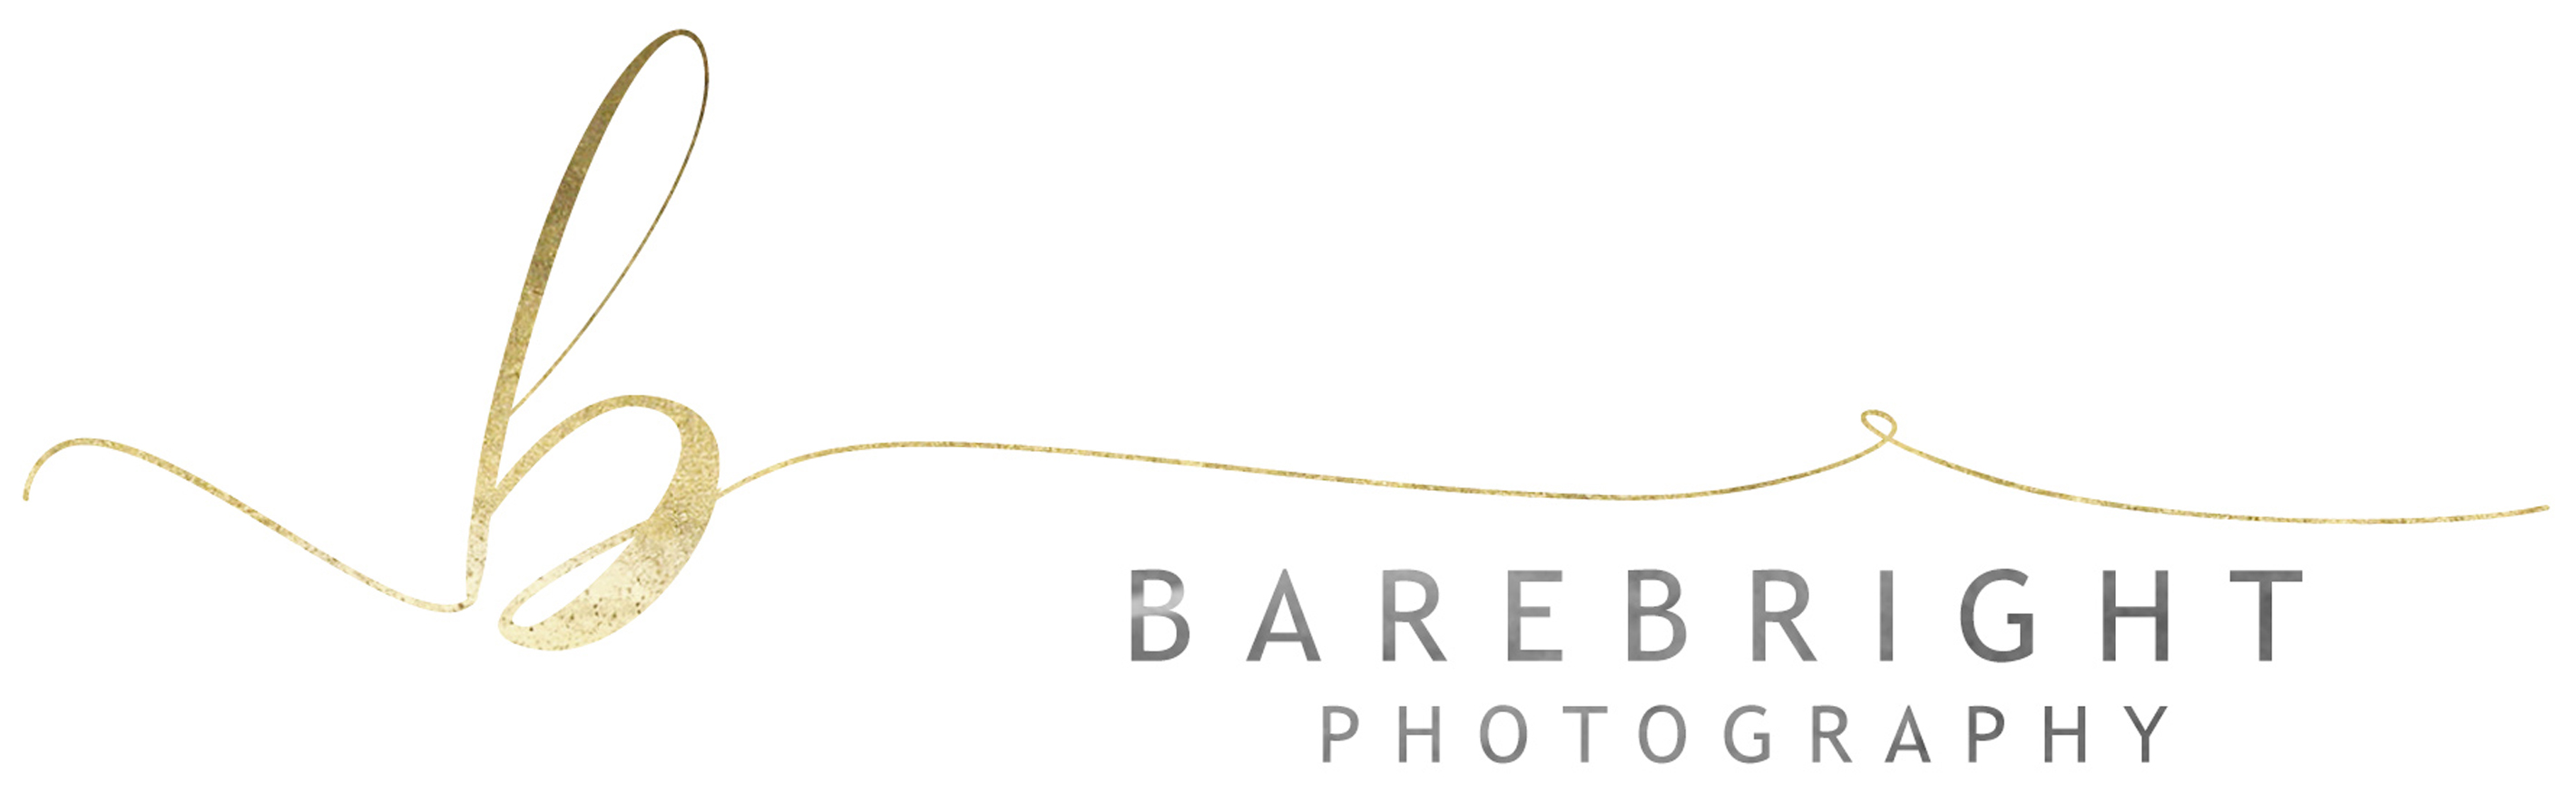 Barebright Photography